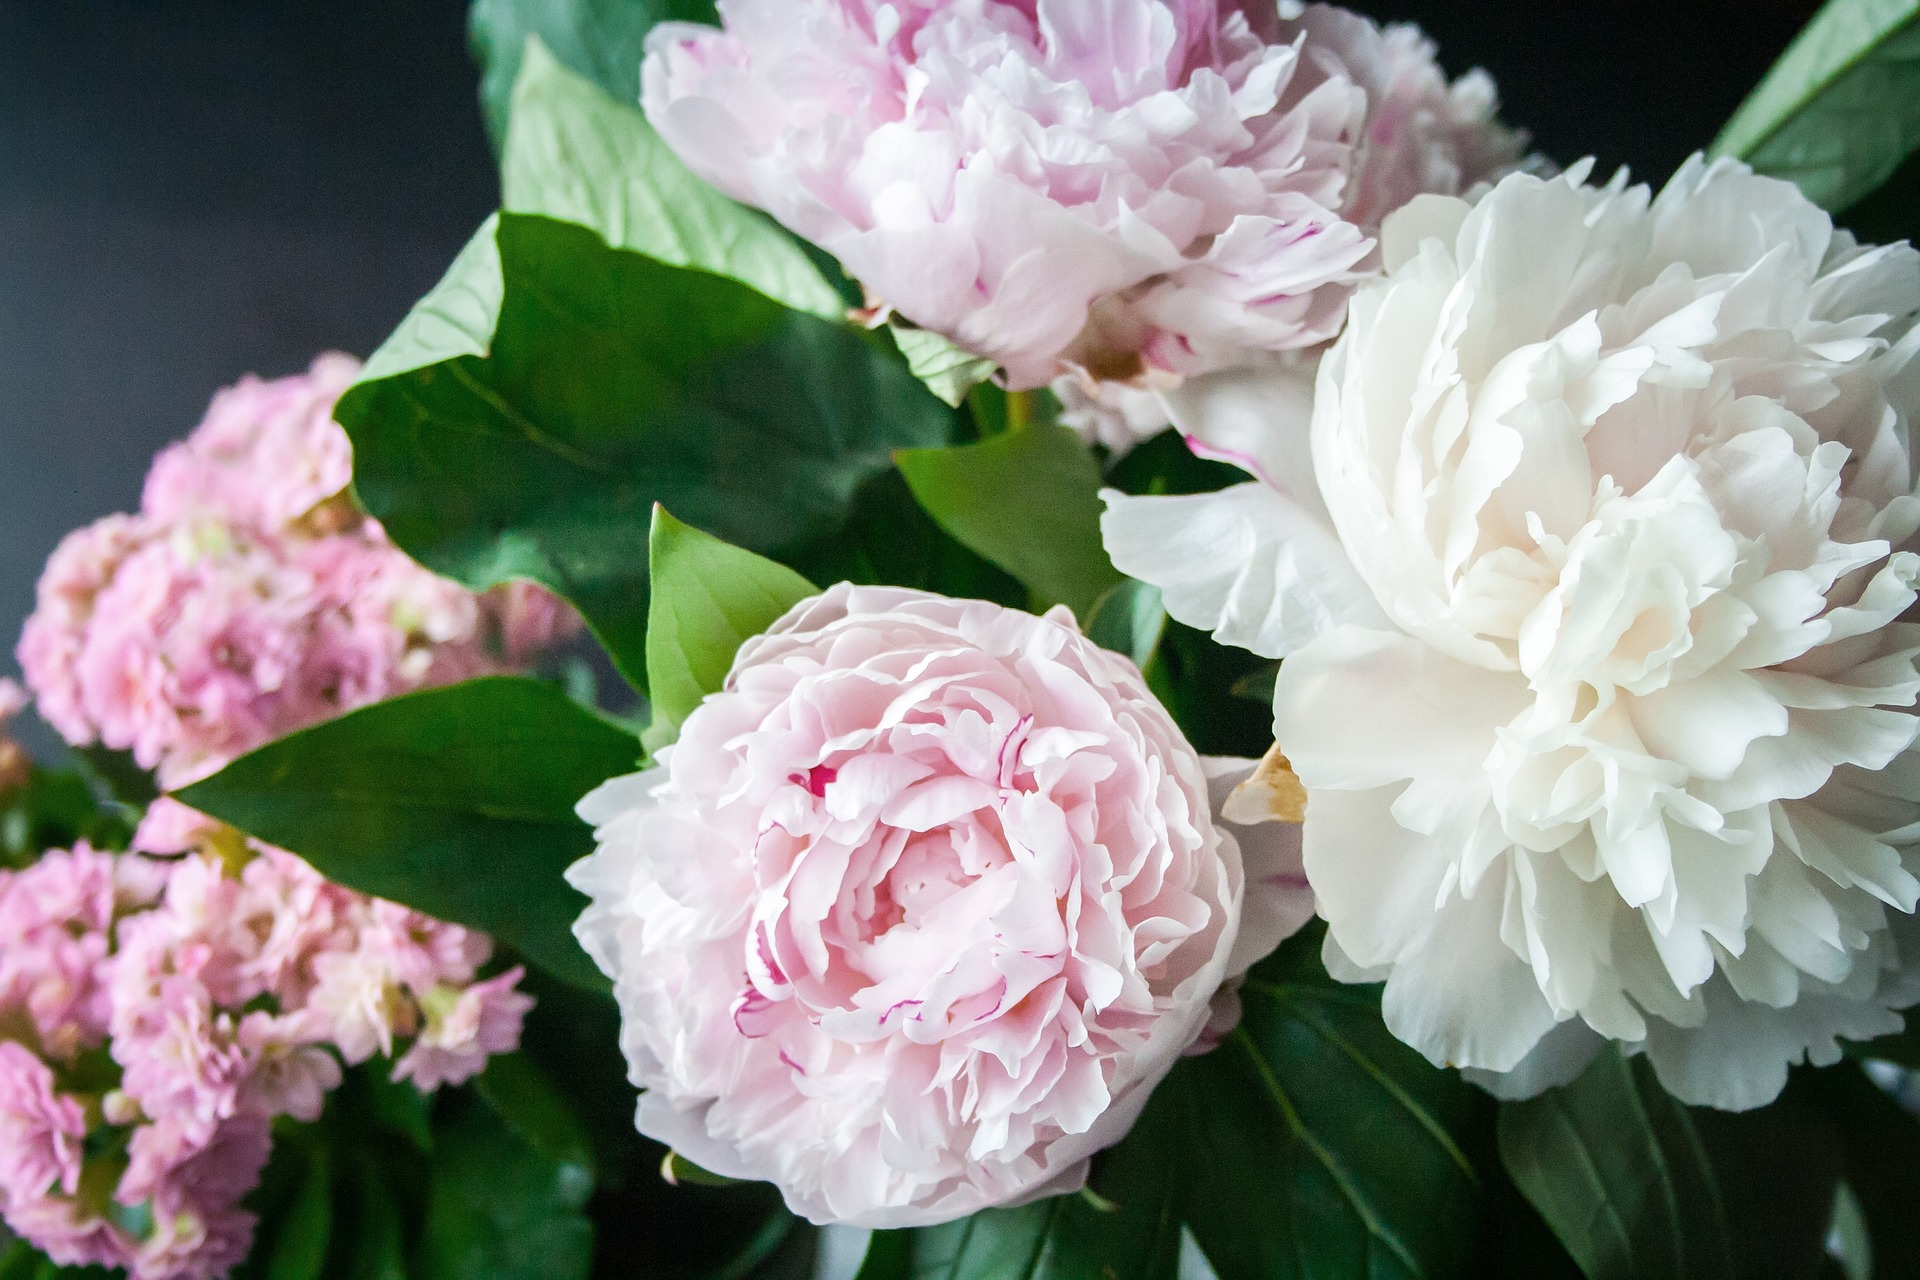 My Steps To Planting A Peony Field Of Dreams In The North Bay